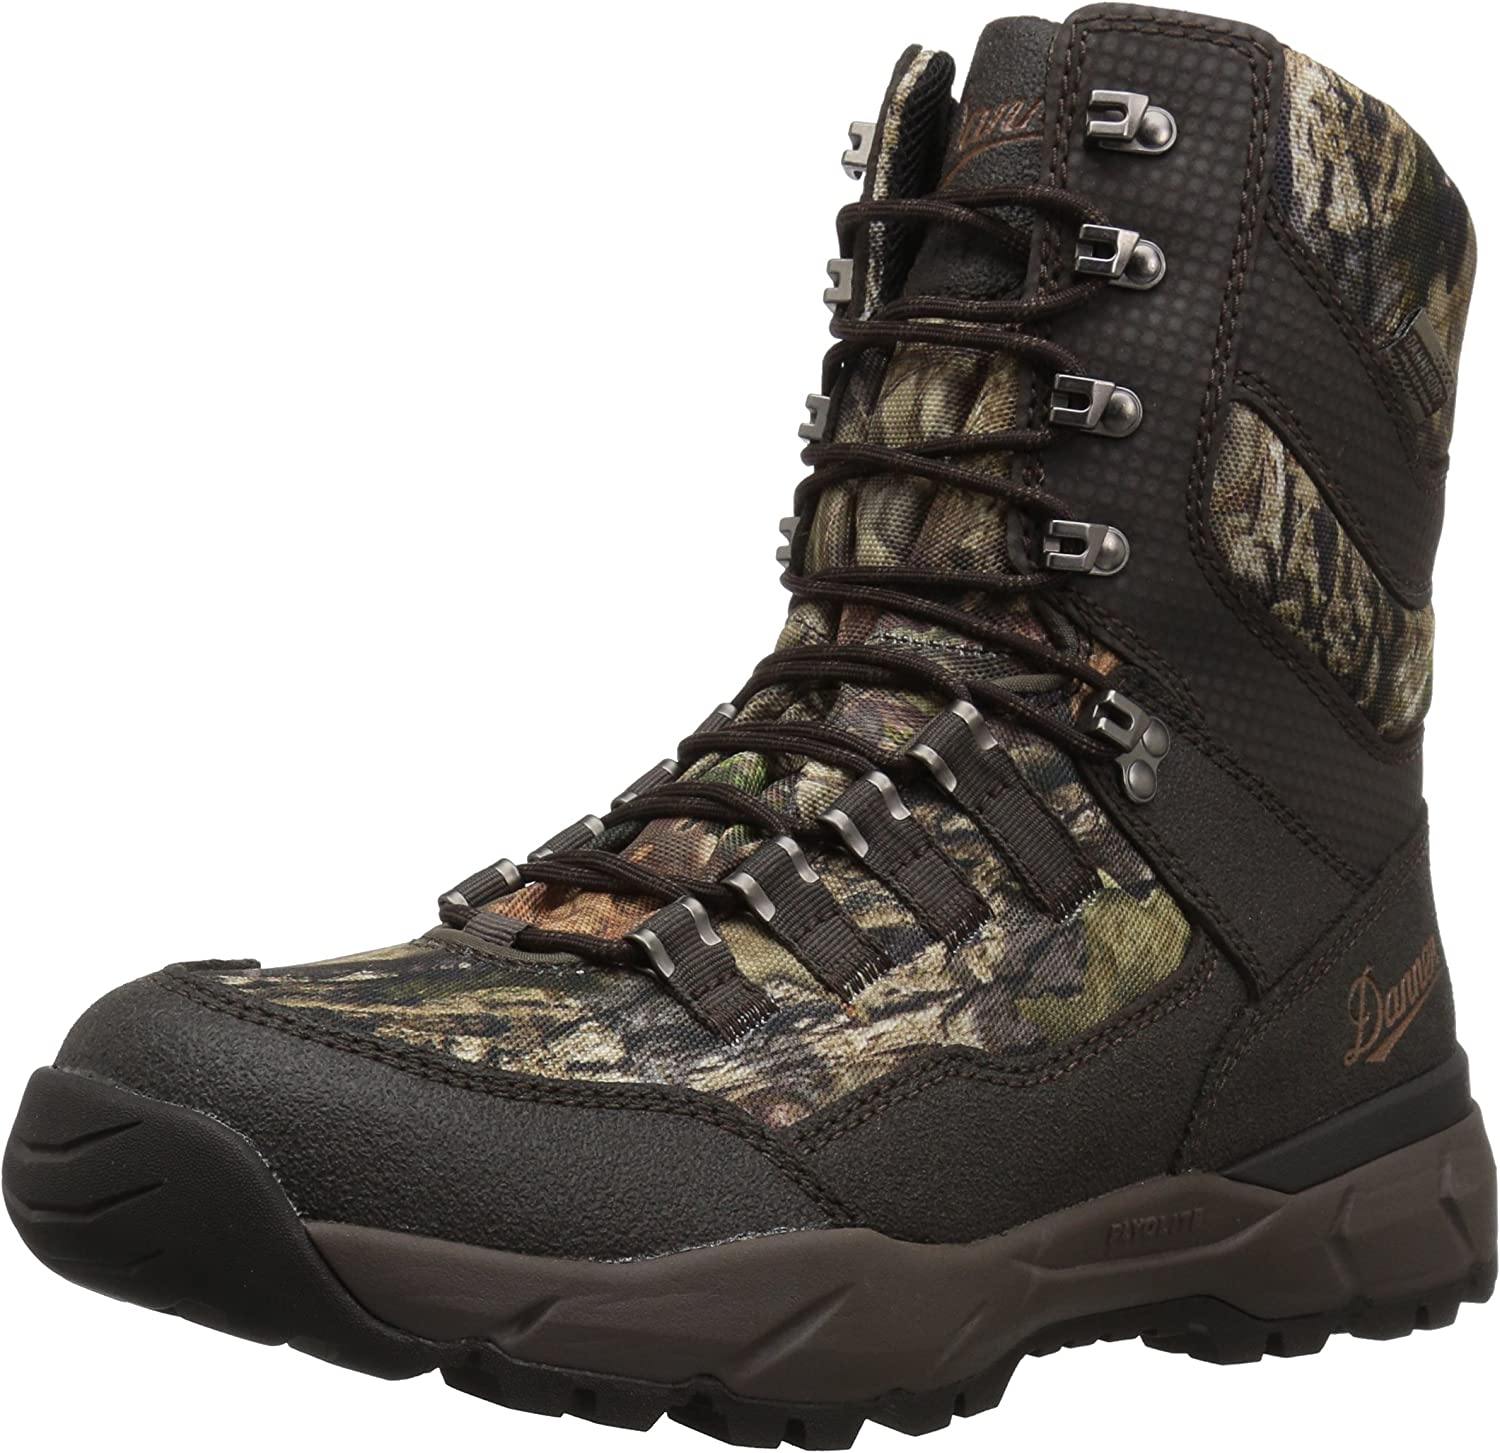 Danner Men's Free Shipping Cheap Bargain Gift Vital gift Insulated 400g Hunting Shoes